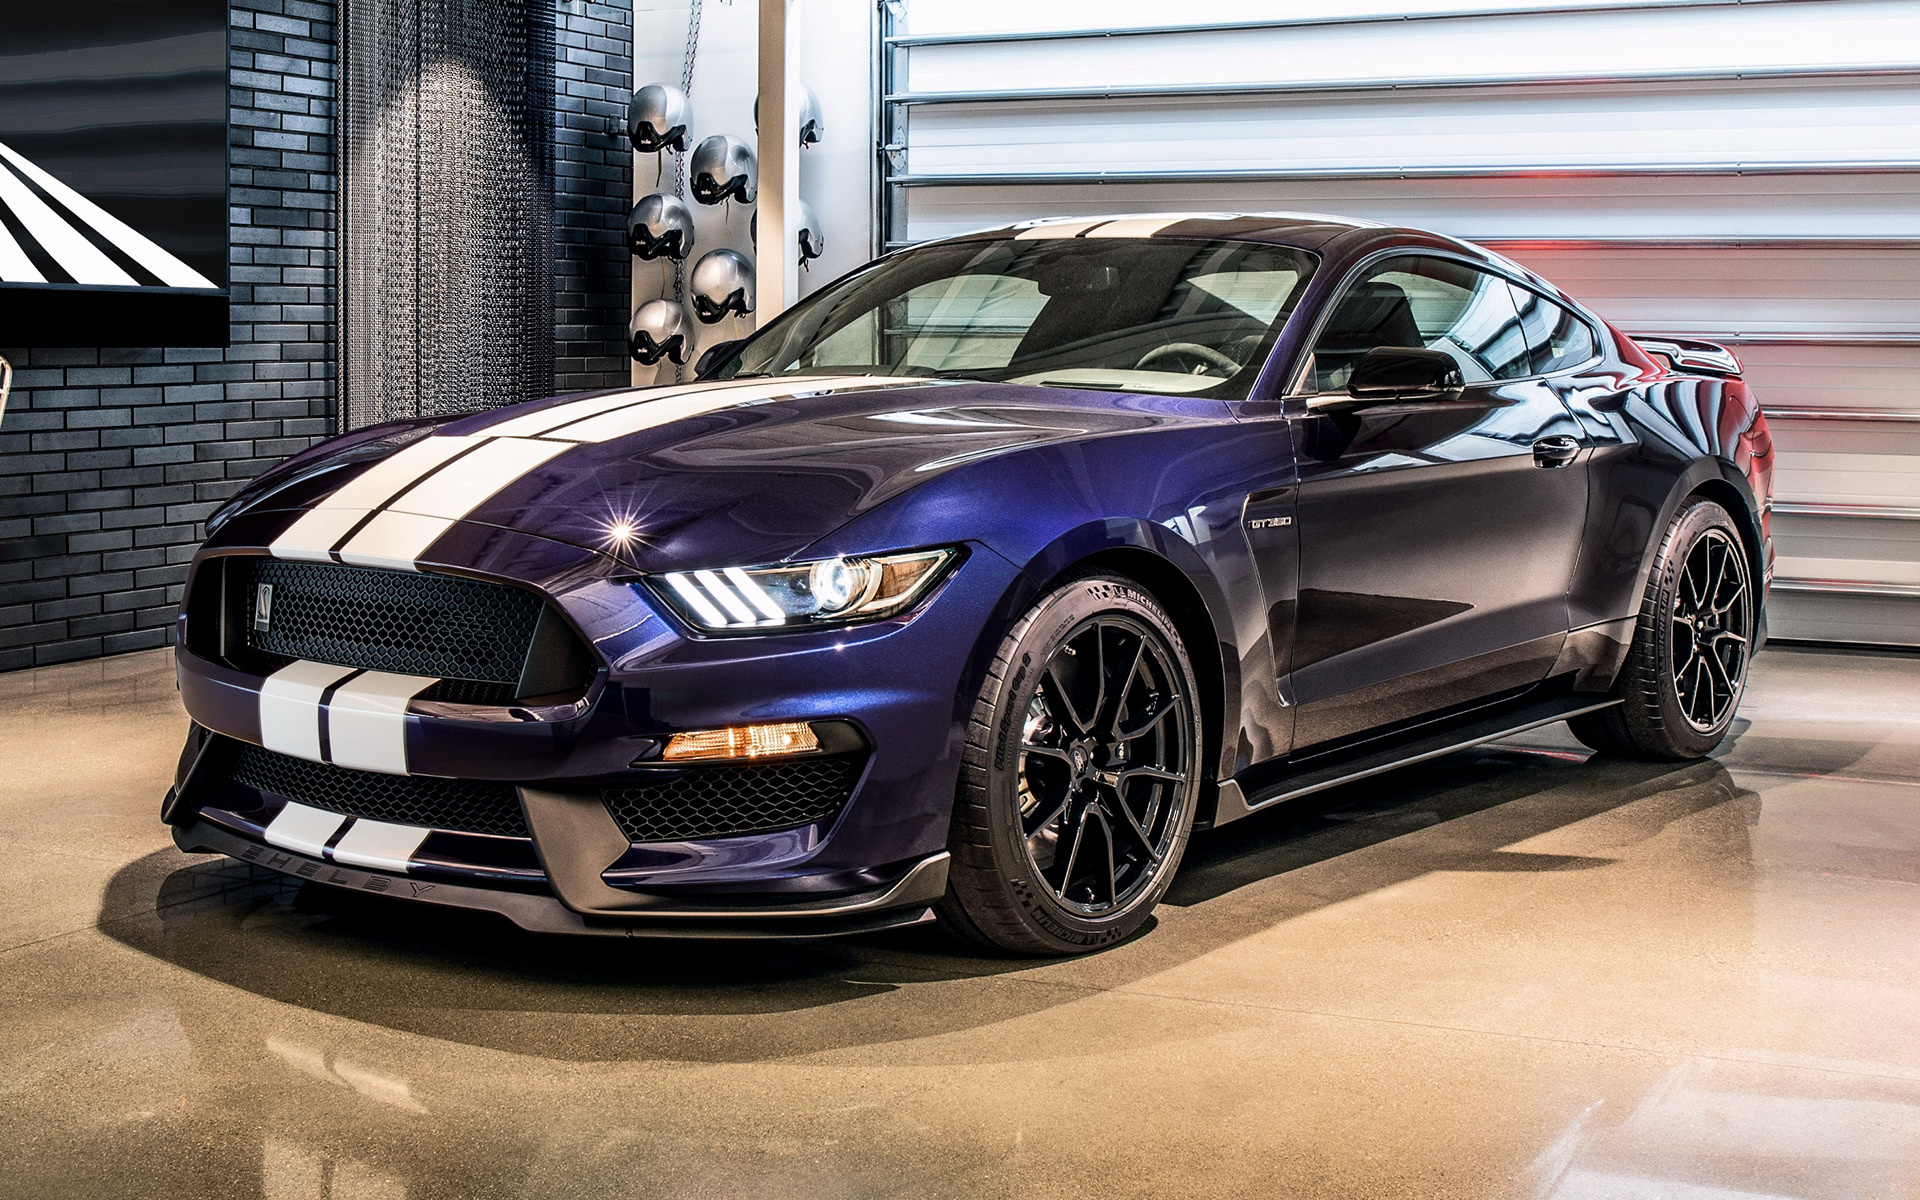 2020 Ford Mustang Shelby Gt 350 New Concept